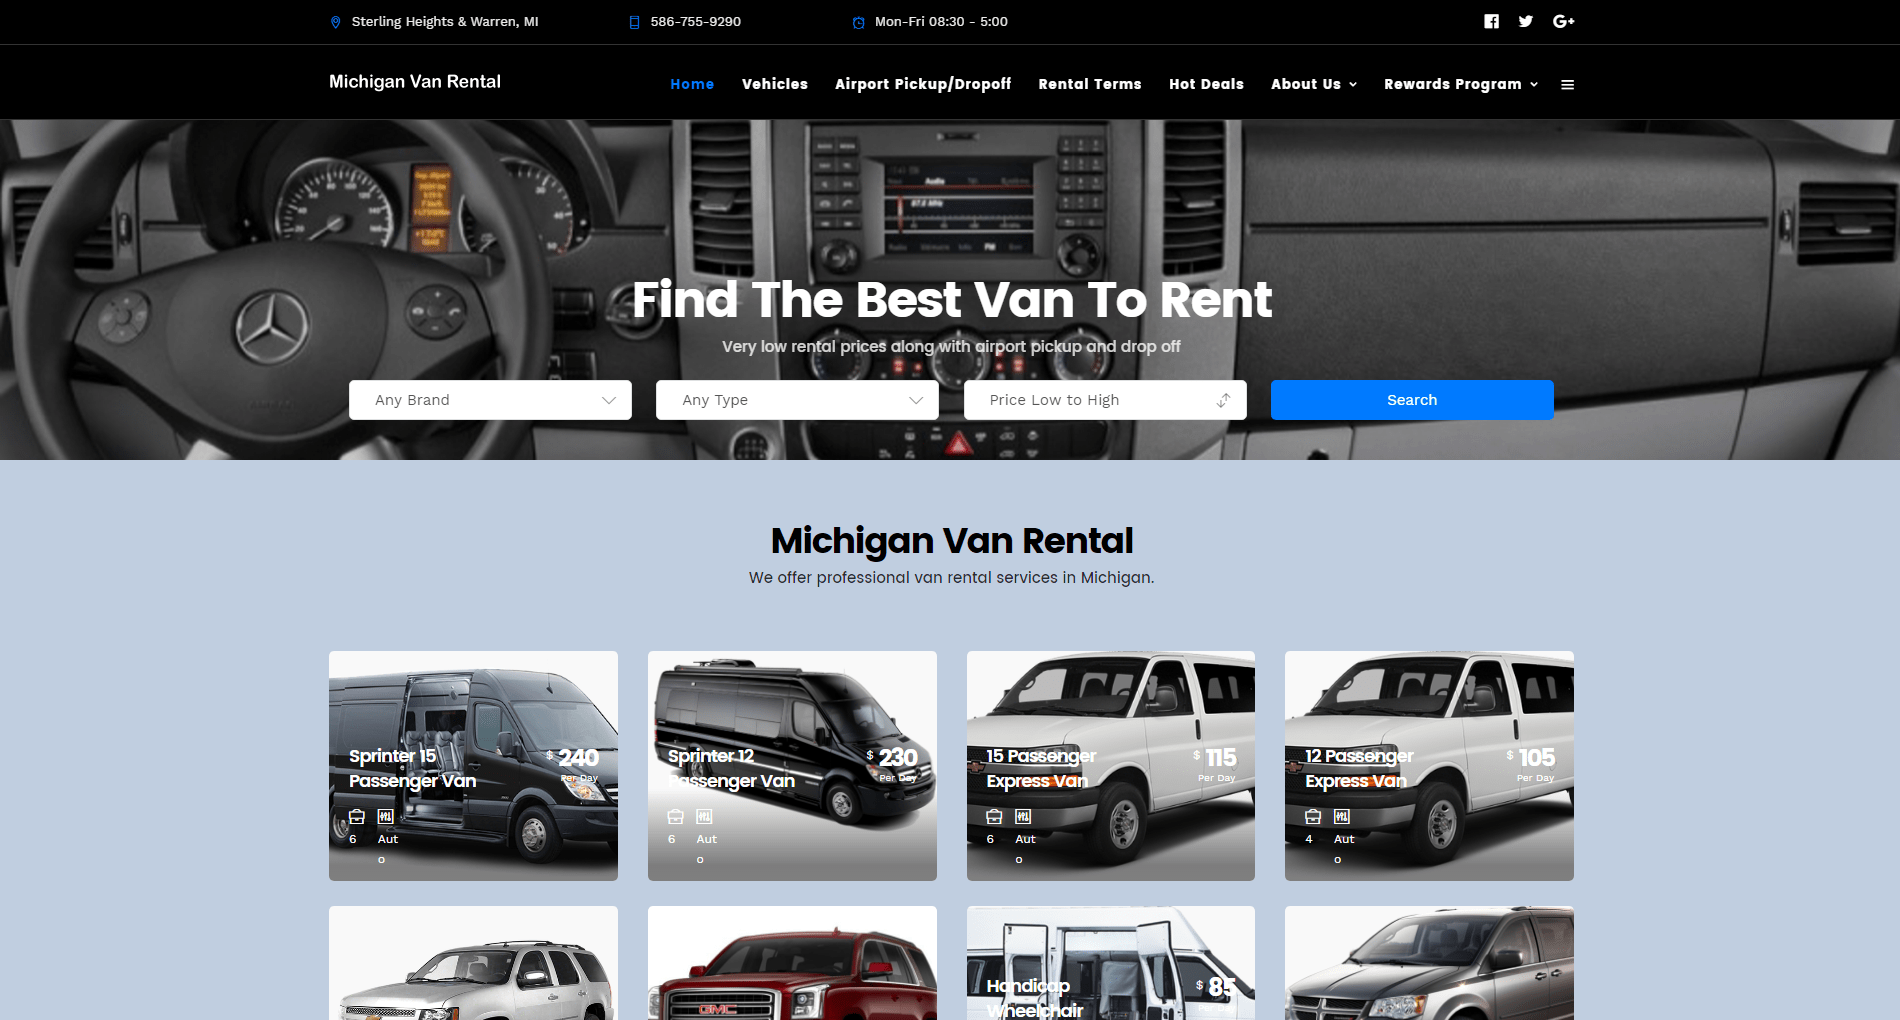 michiganvanrental.com